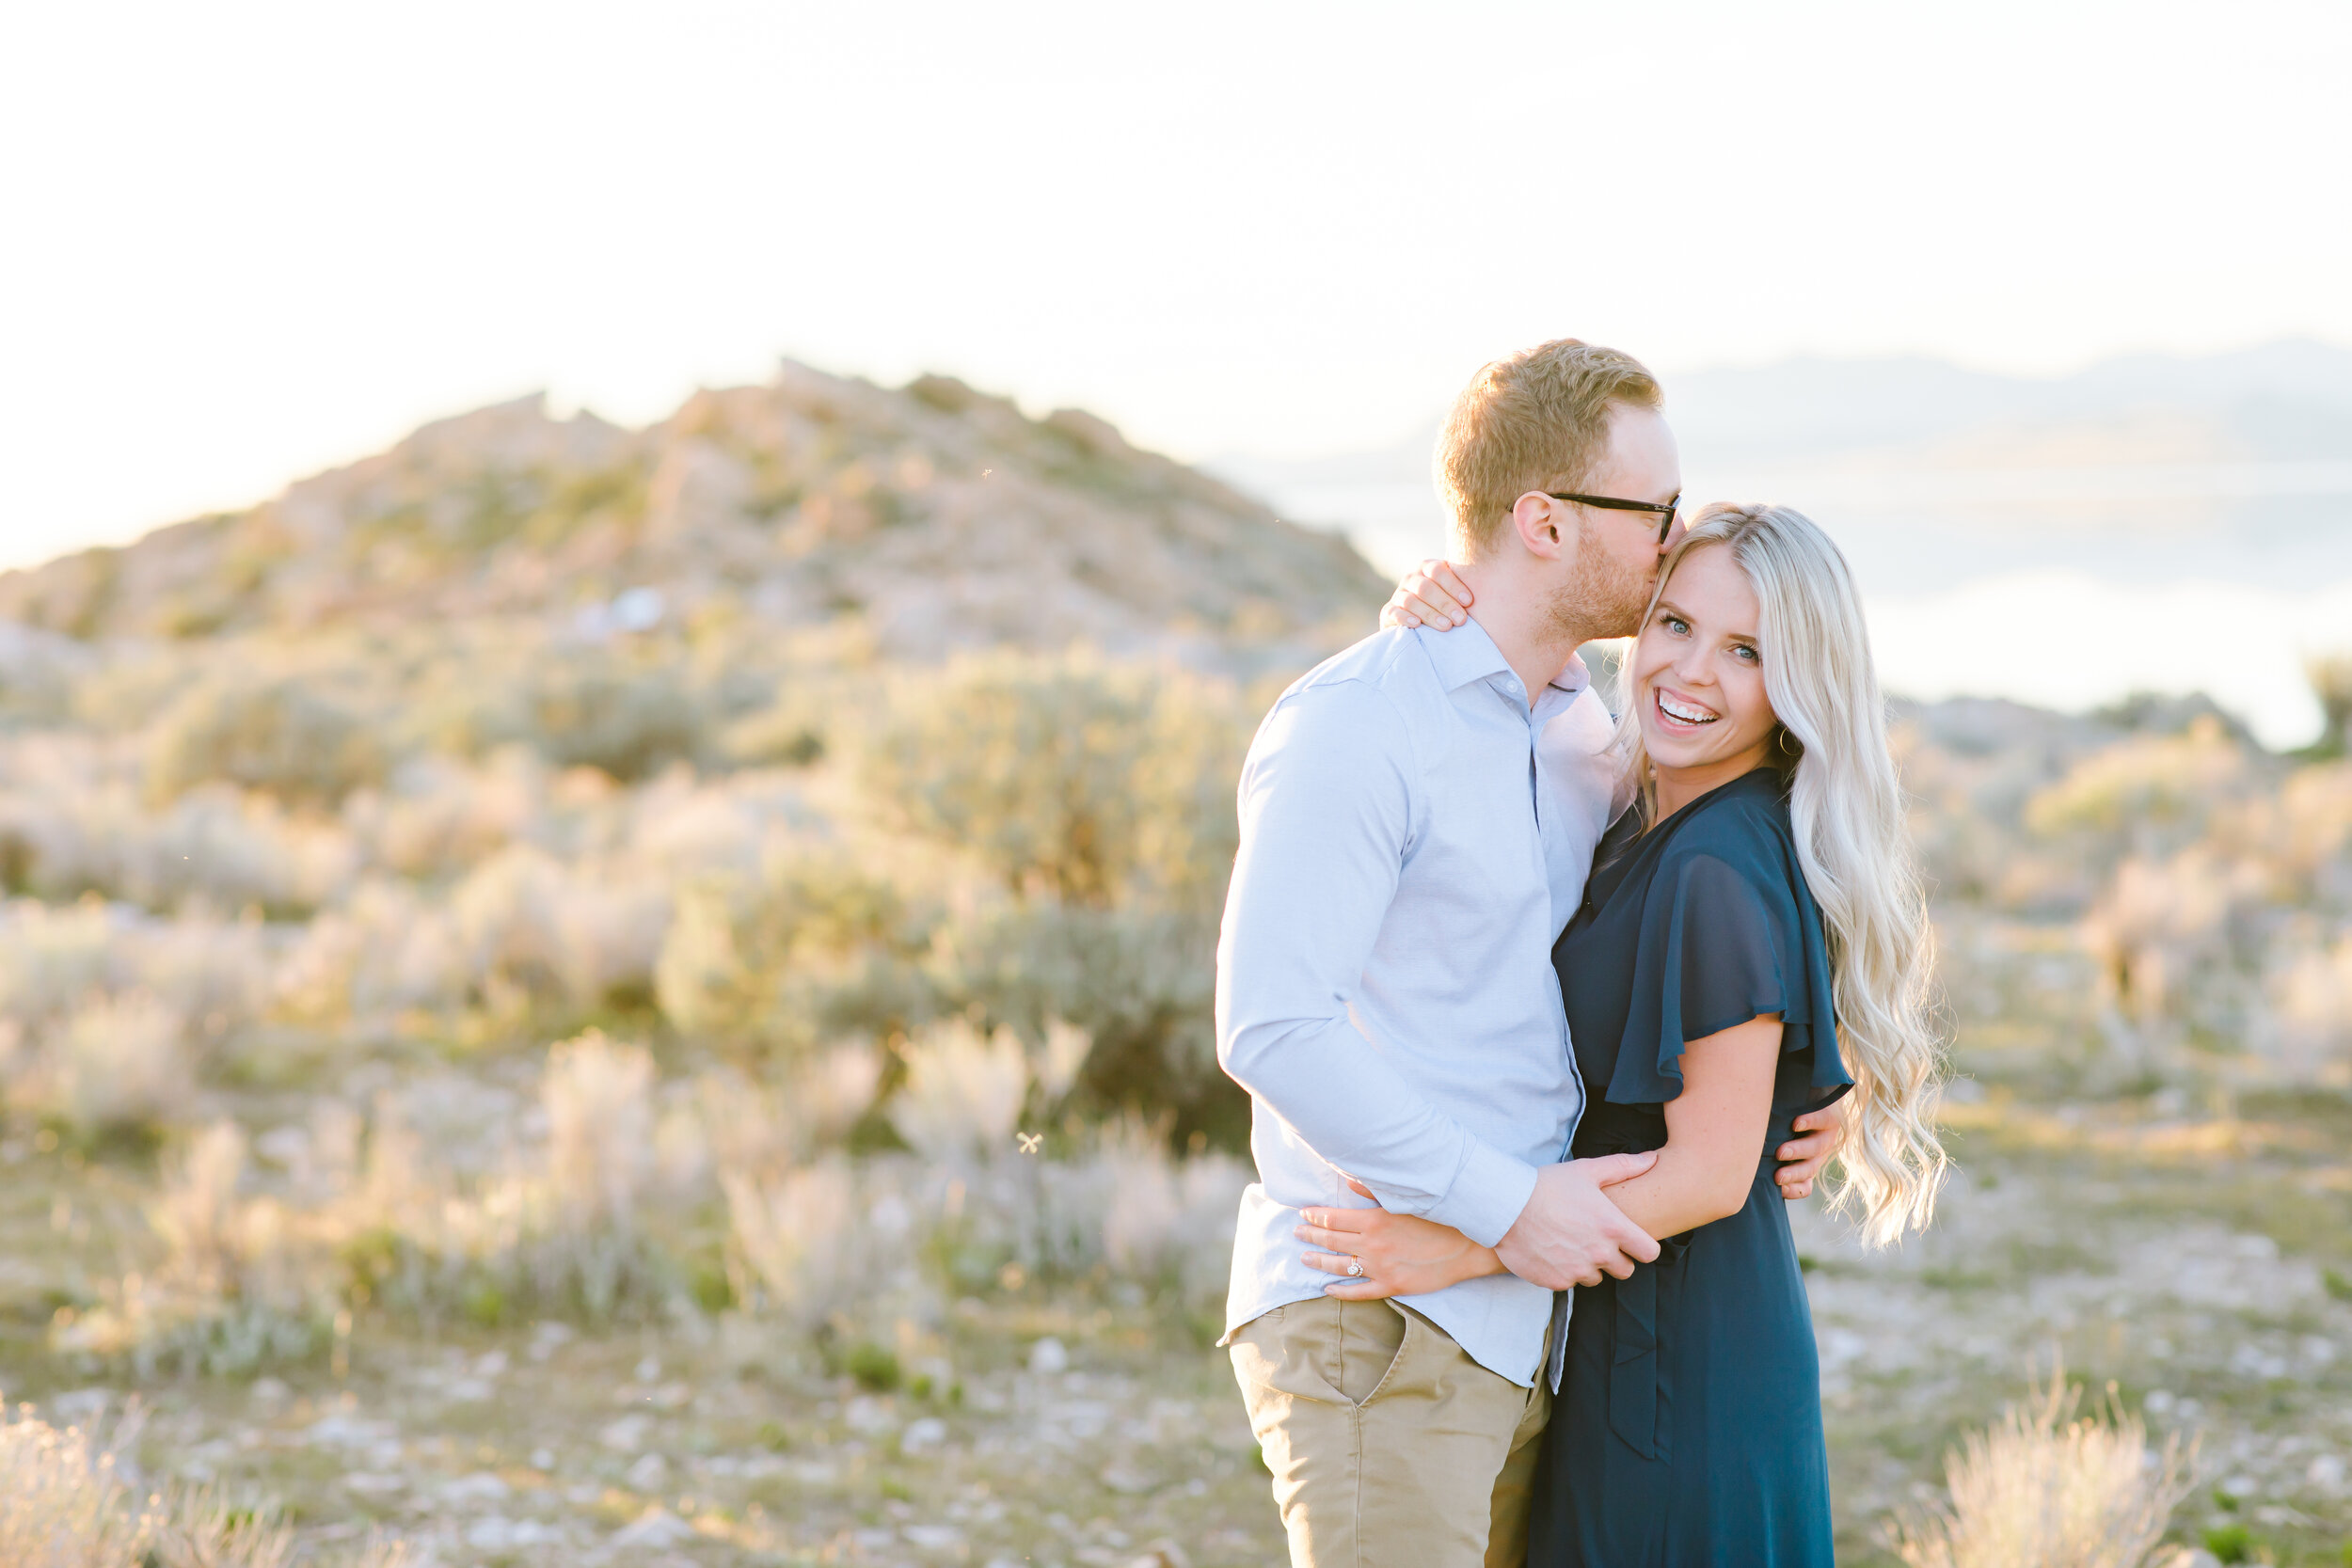 women's hairstyle inspiration soft curls hairstyle inspiration for engagement pictures couple holding each other kissing her head pose inspiration love on antelope island utah photo shoot location ideas free location inspiration in utah engagements #couplegoals #engagements #antelopeisland #couplekissing #engagementoutfitinspo #locationinspo #romantic #outside #engagementposes #engagementideas #weddingring